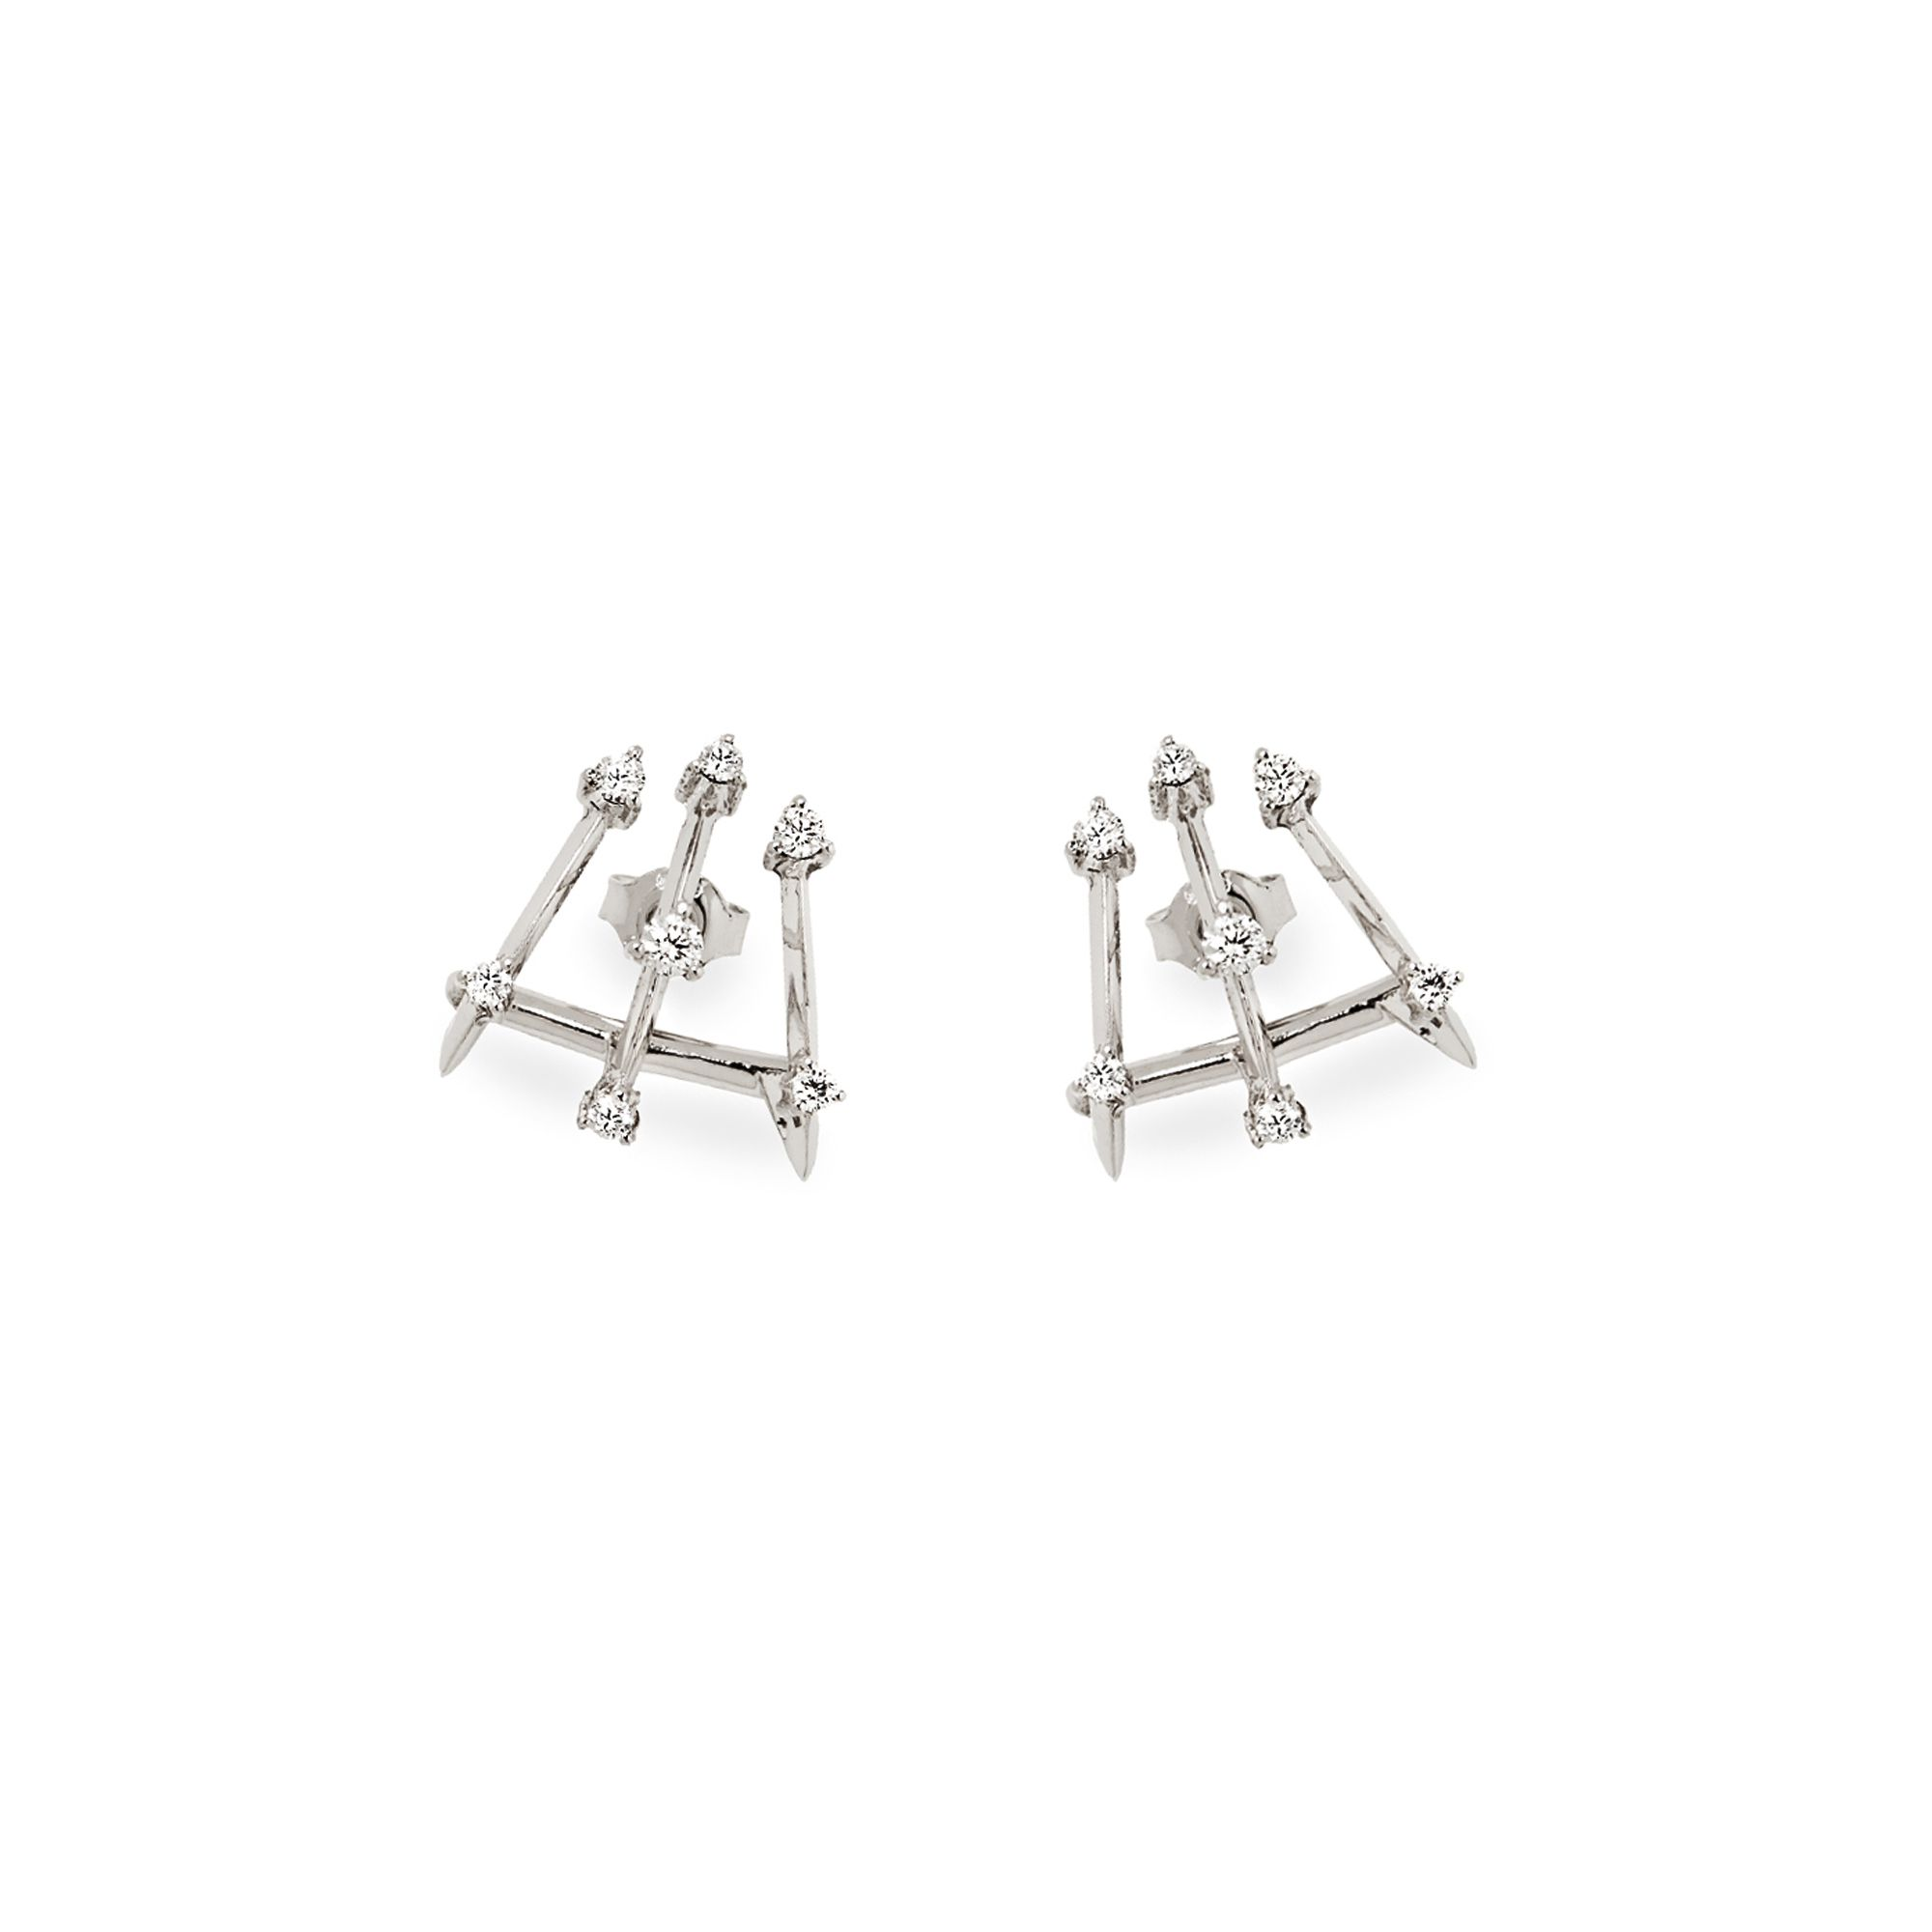 3 element 'Balance' earrings Earrings in white gold and diamonds